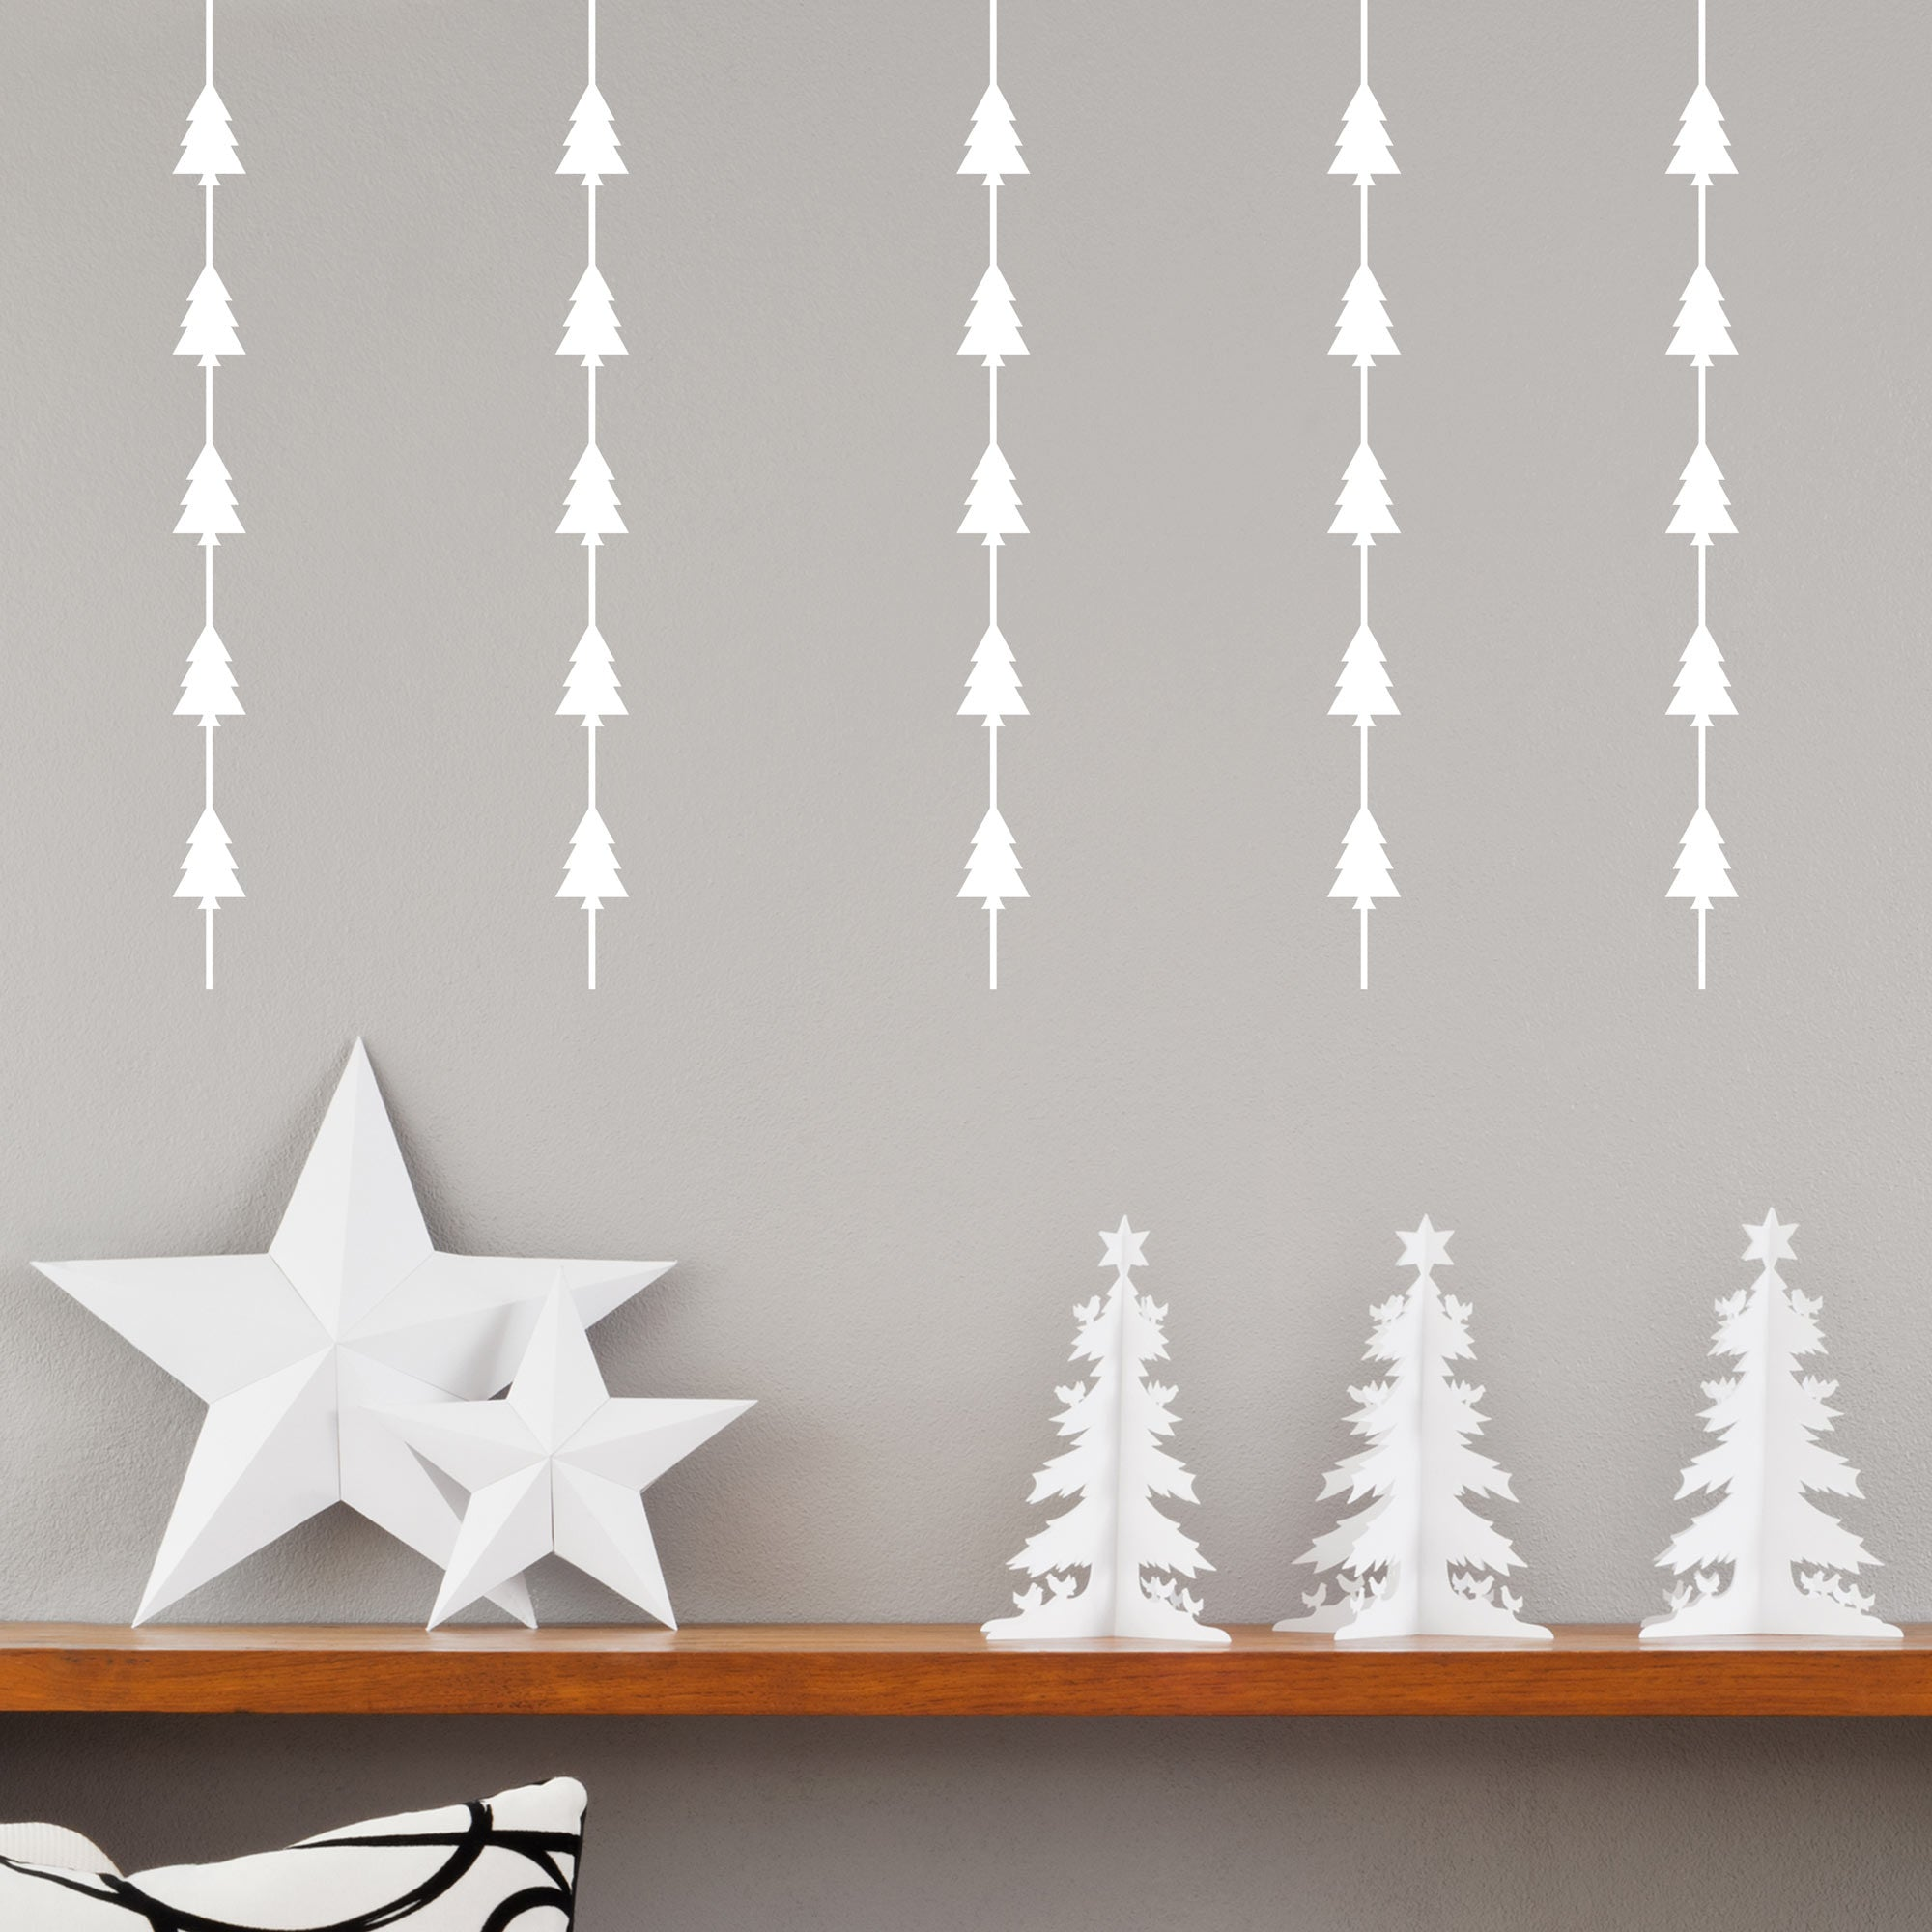 Christmas Tree Garland.Christmas Tree Garland Wall Sticker